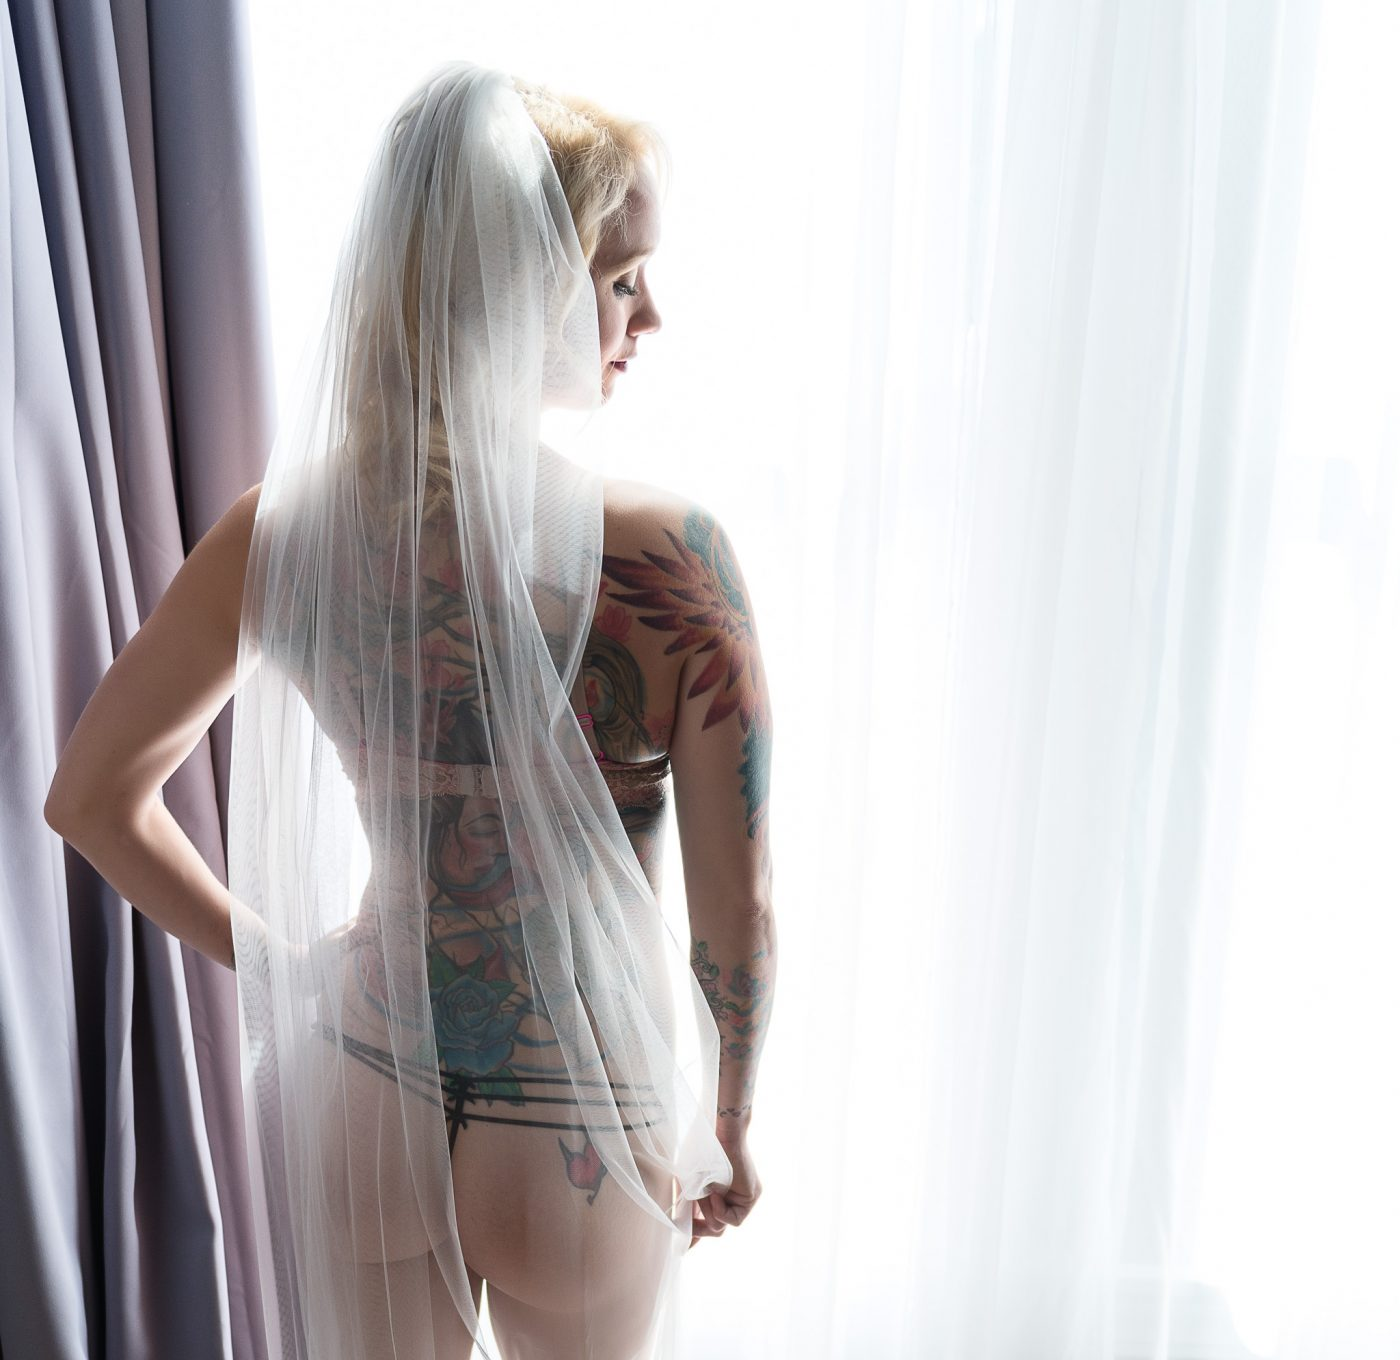 Houston Heights Boudoir with Zina Sexy Tattoo Images